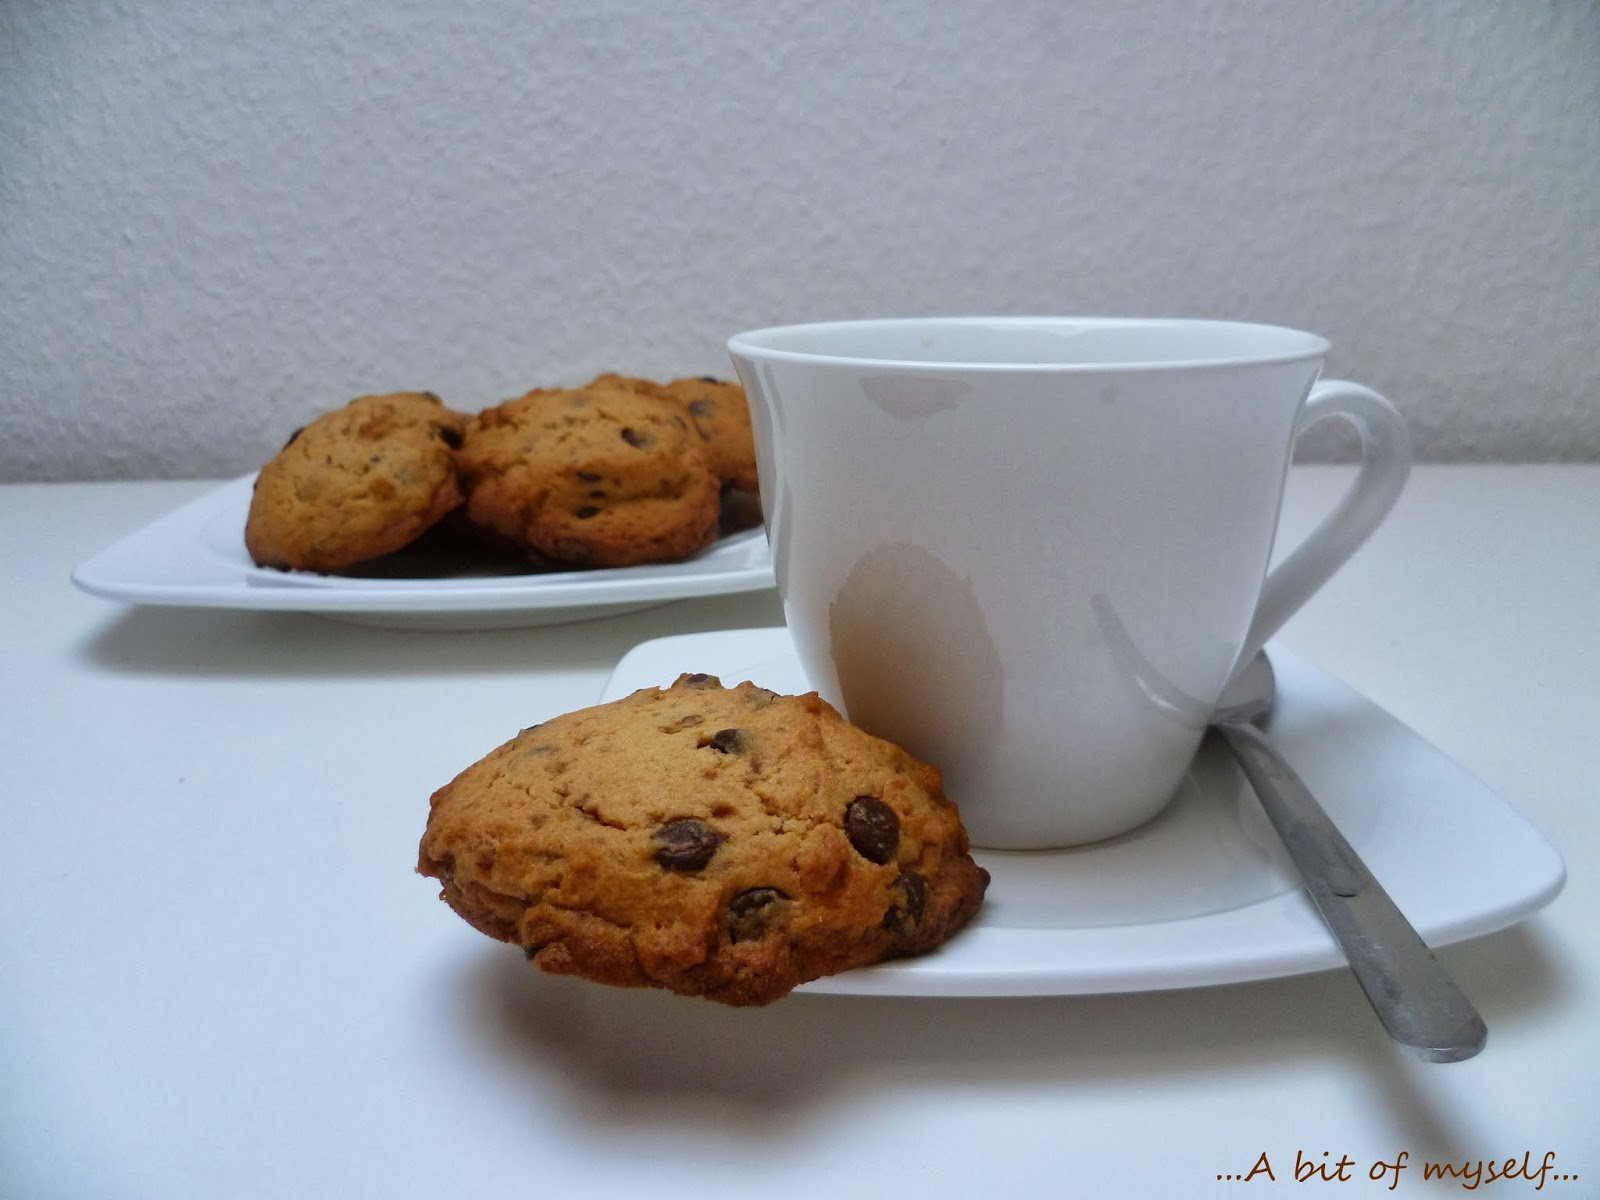 chocolate chip cookies by luca montersino - and my late wishes for a happy 2014